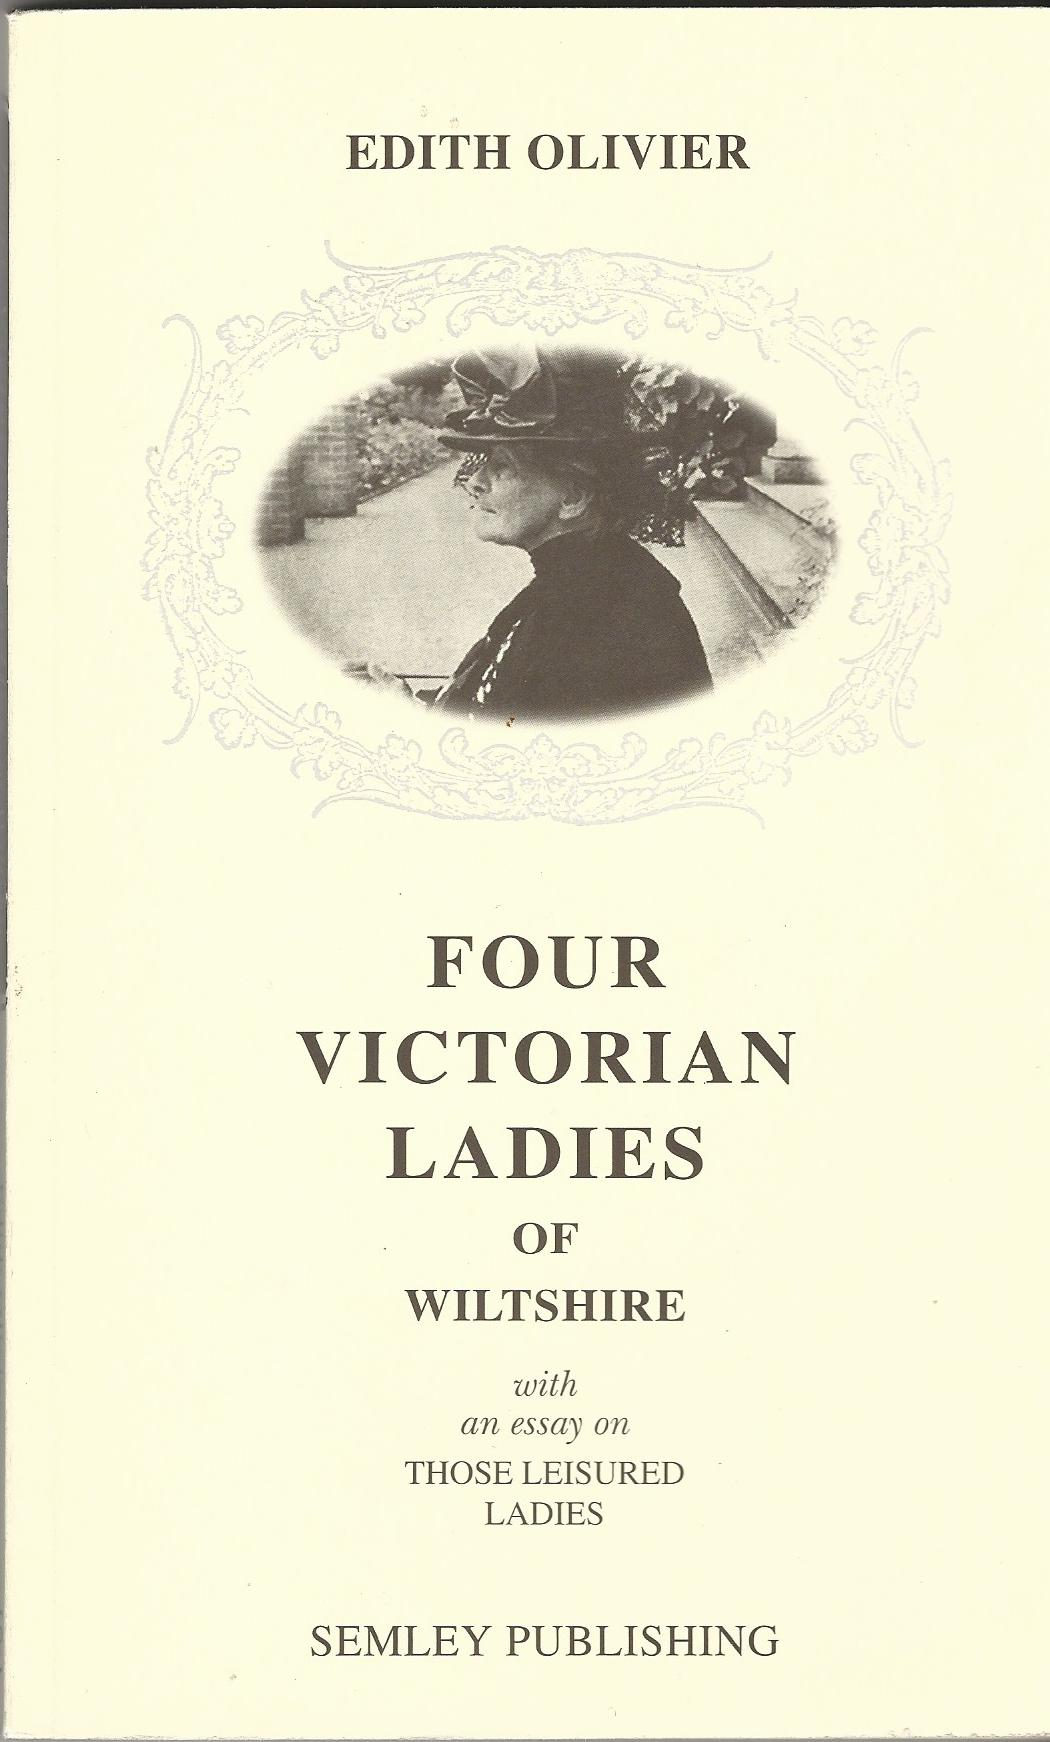 Image for Four Victorian Ladies of Wiltshire with Essays on those Leisured Ladies.